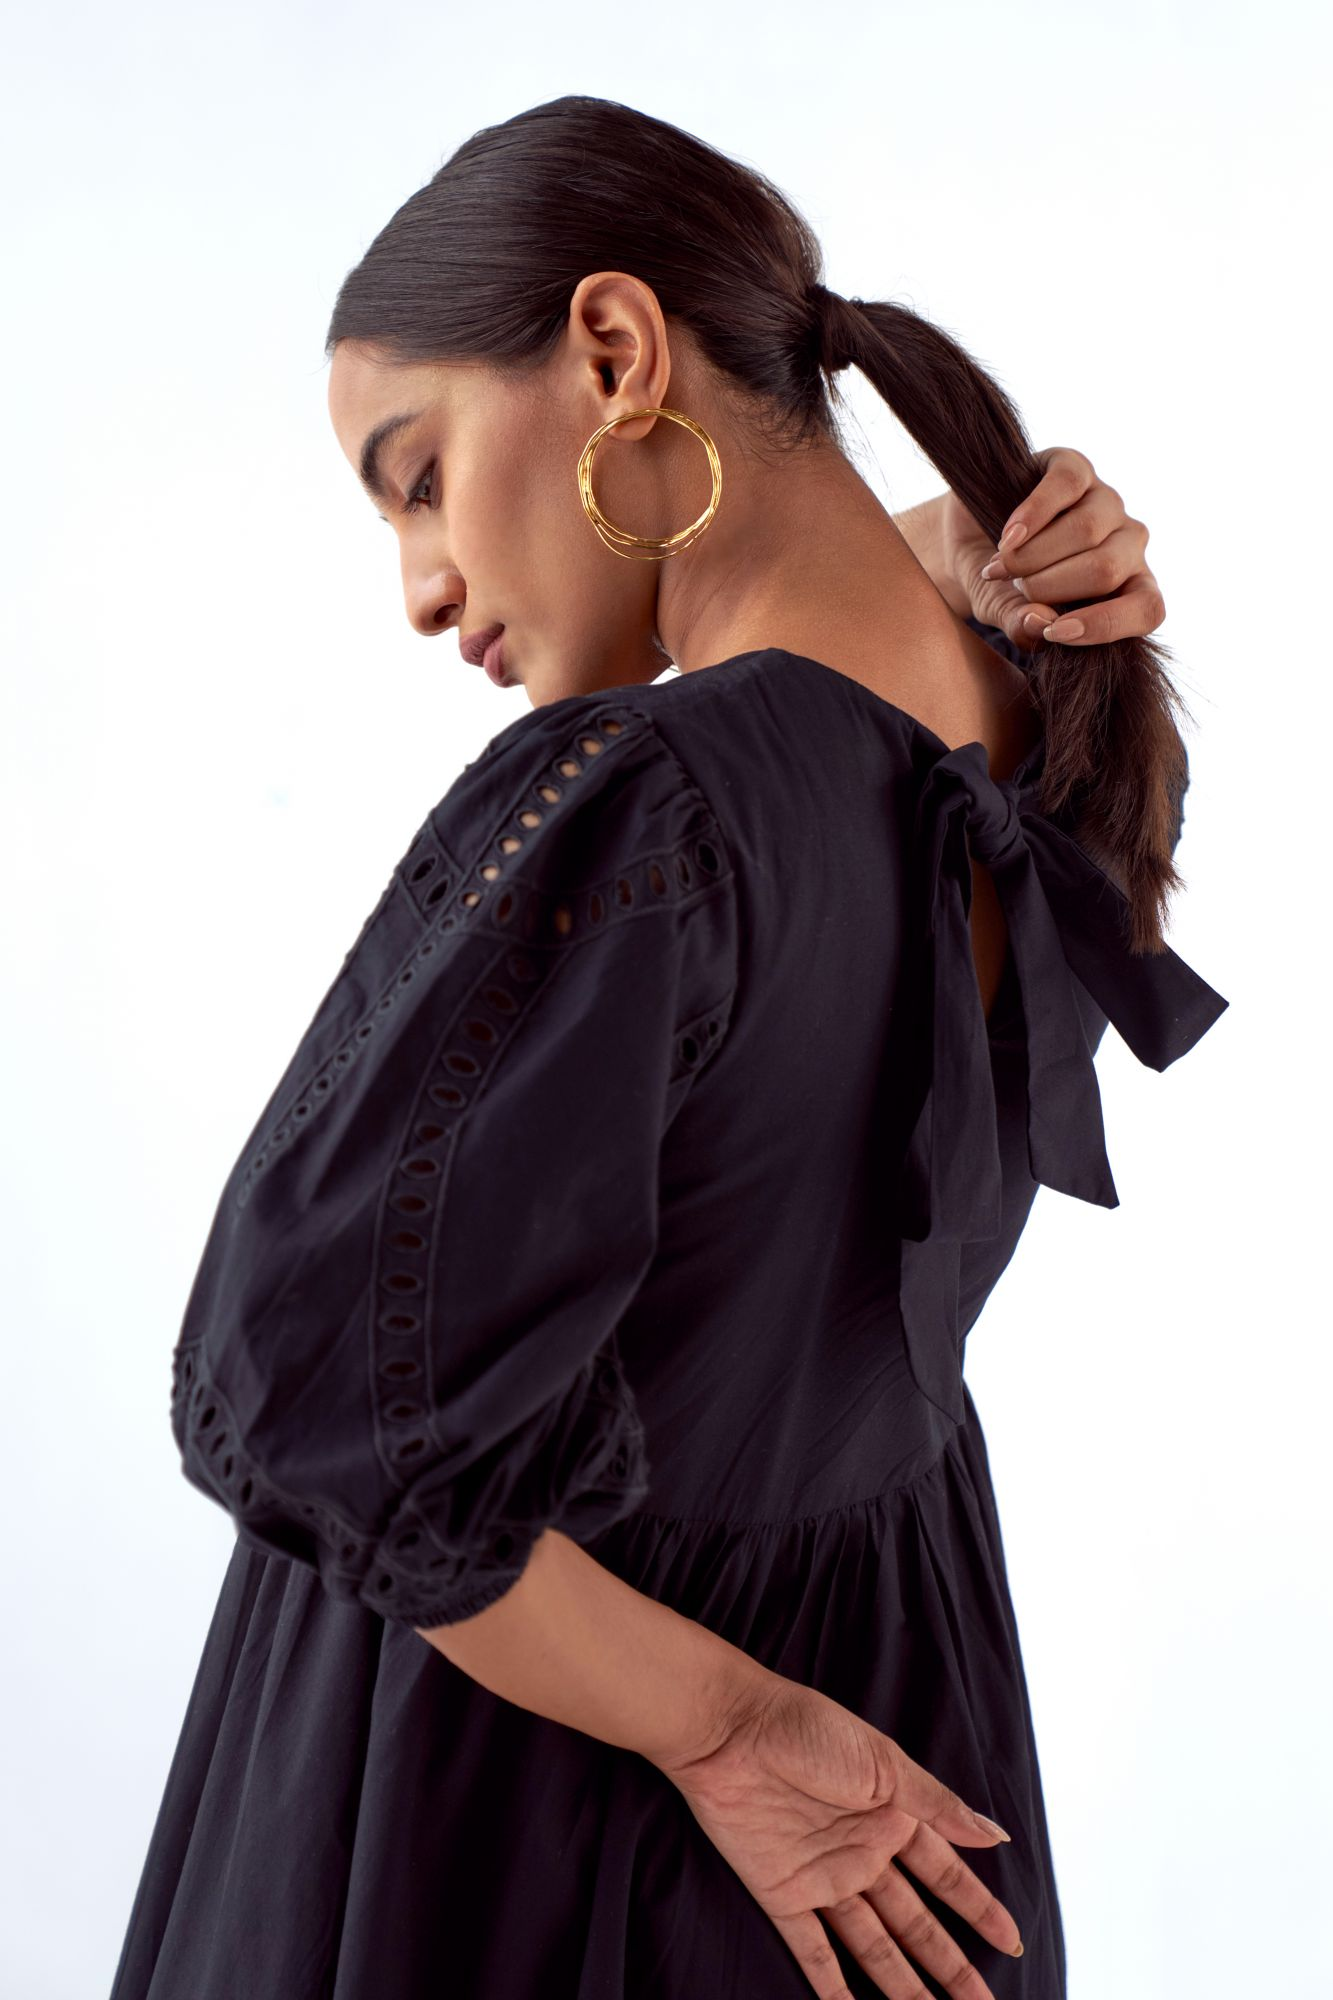 MARRAKESH BLACK COTTON POPLIN KNEE LENGTH DRESS WITH ELBOW LENGTH EMBROIDERED SLEEVES